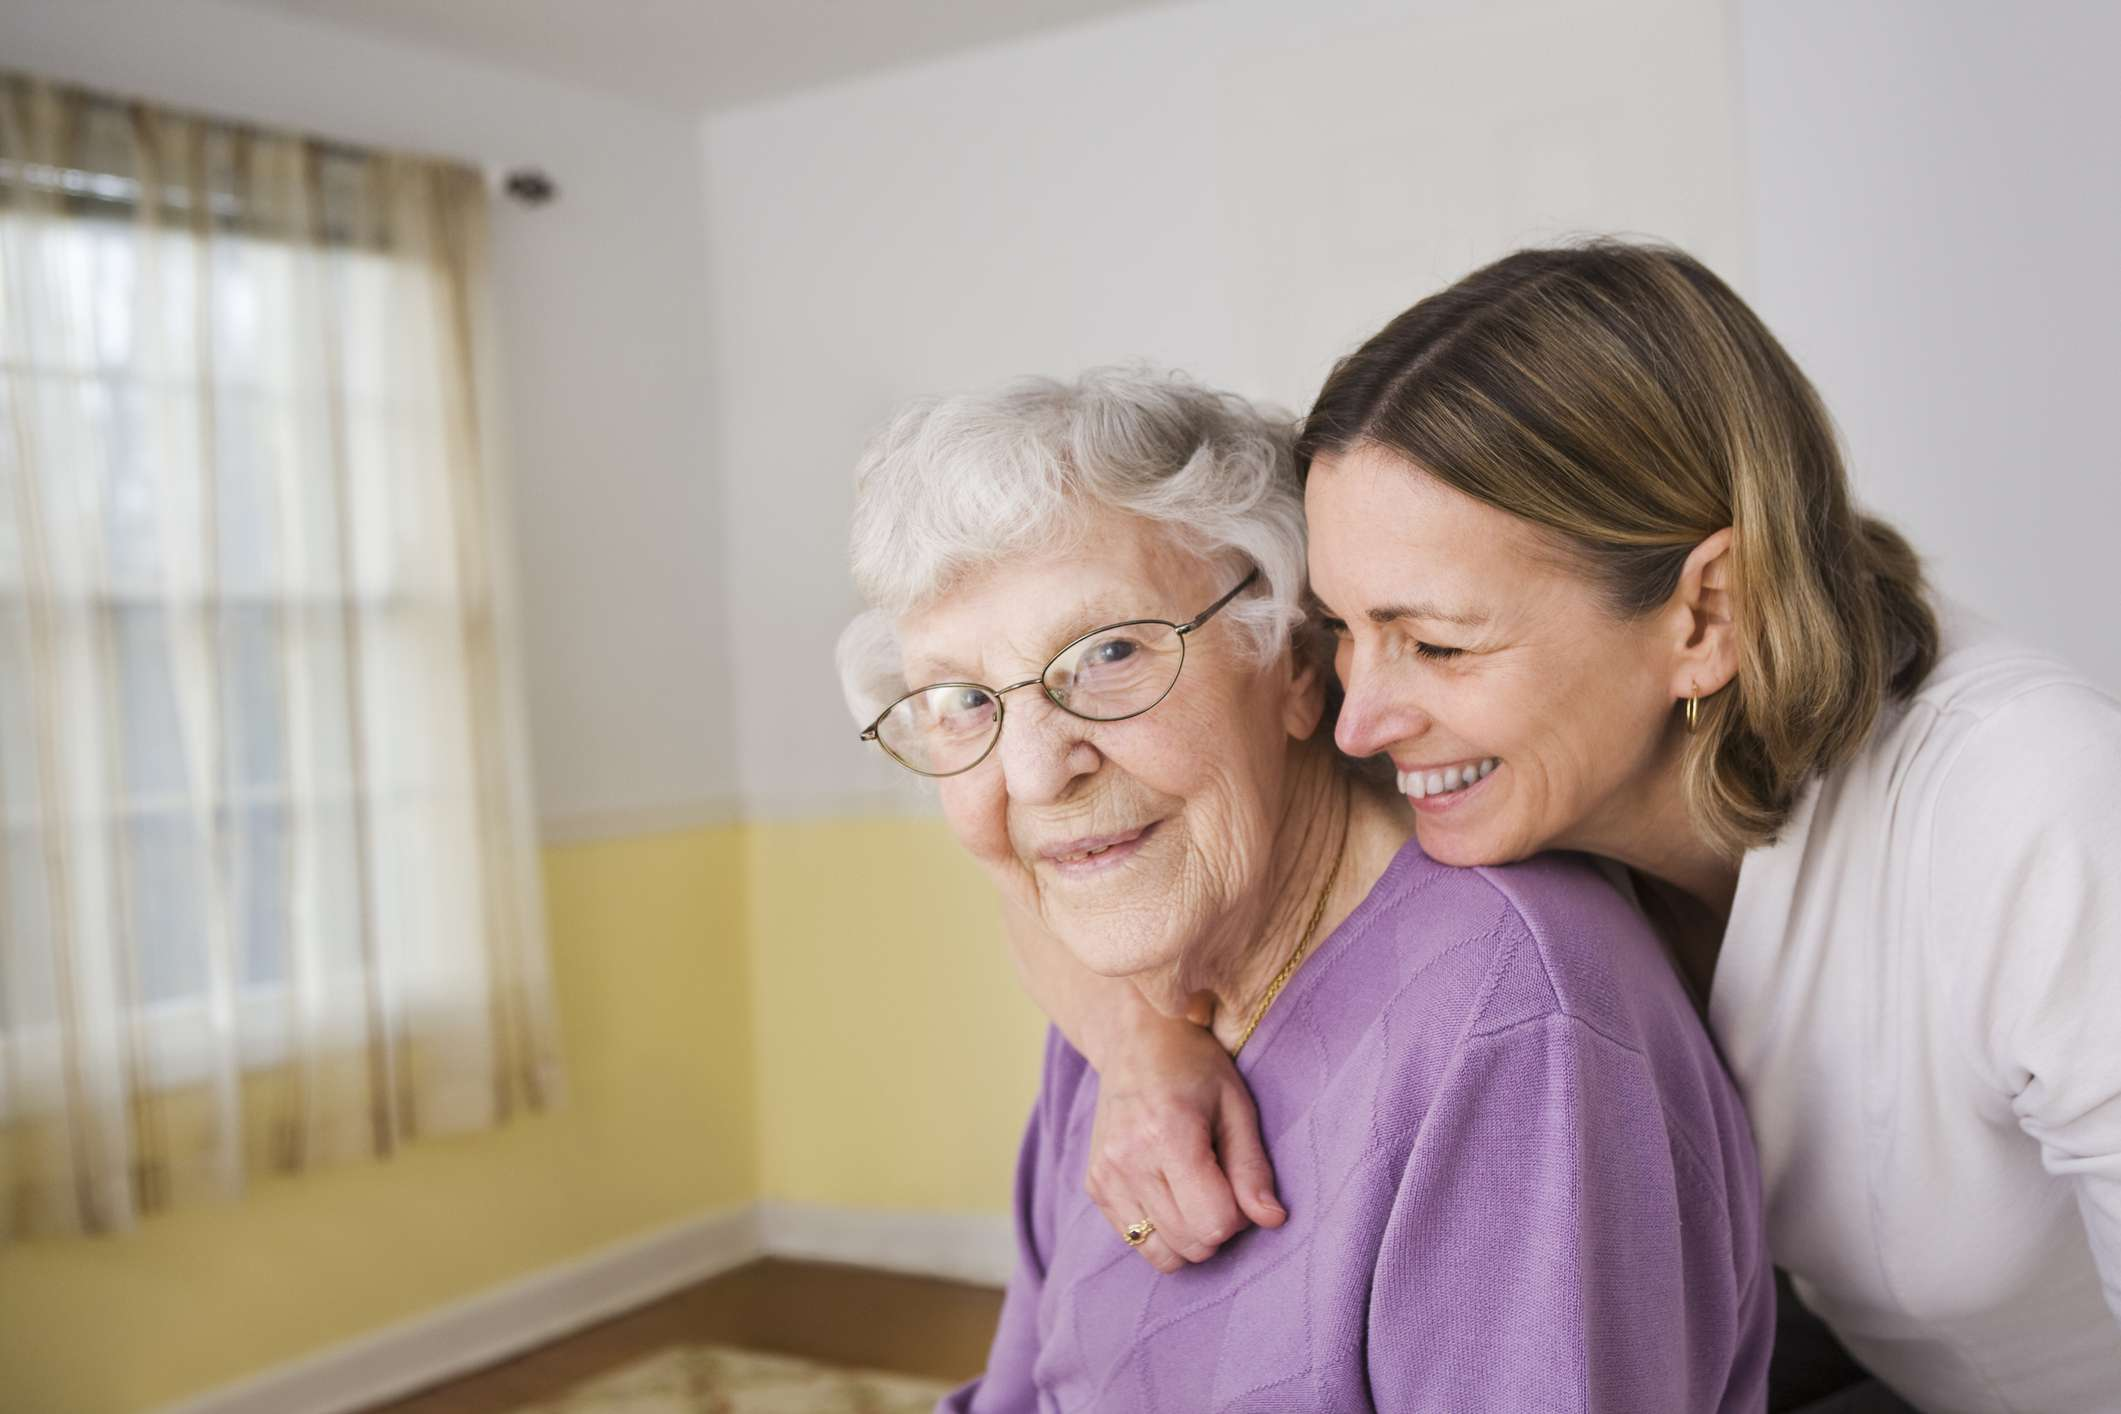 daughter caring for elderly mom and smiling